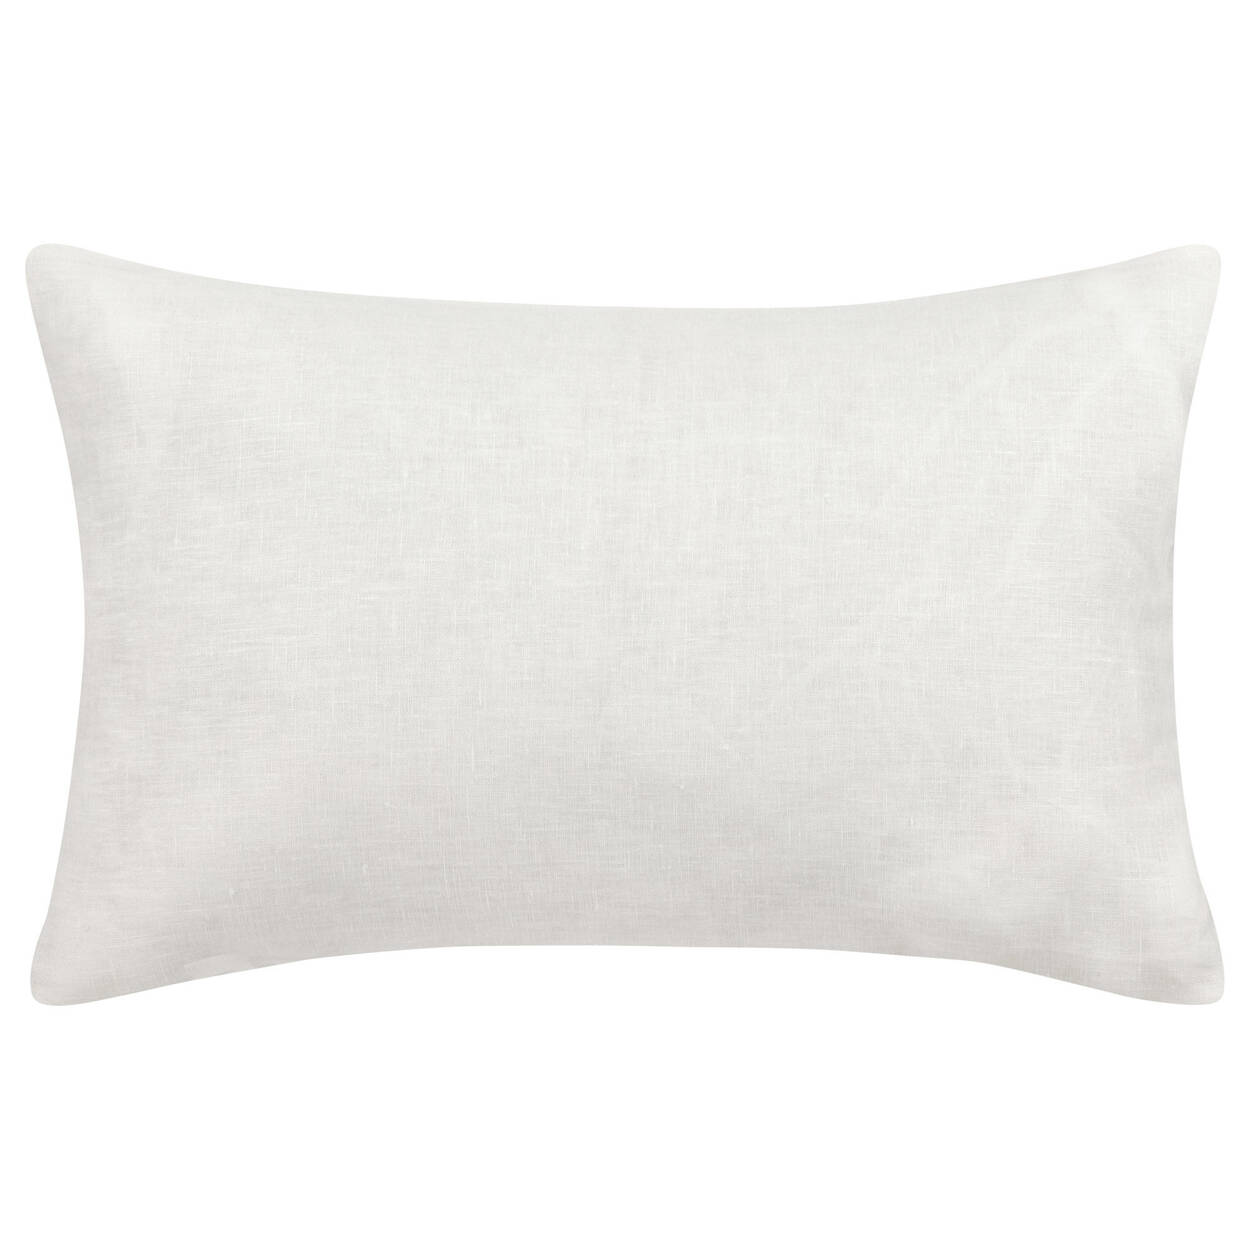 "Natela Lumbar Decorative Pillow 13"" X 20"""